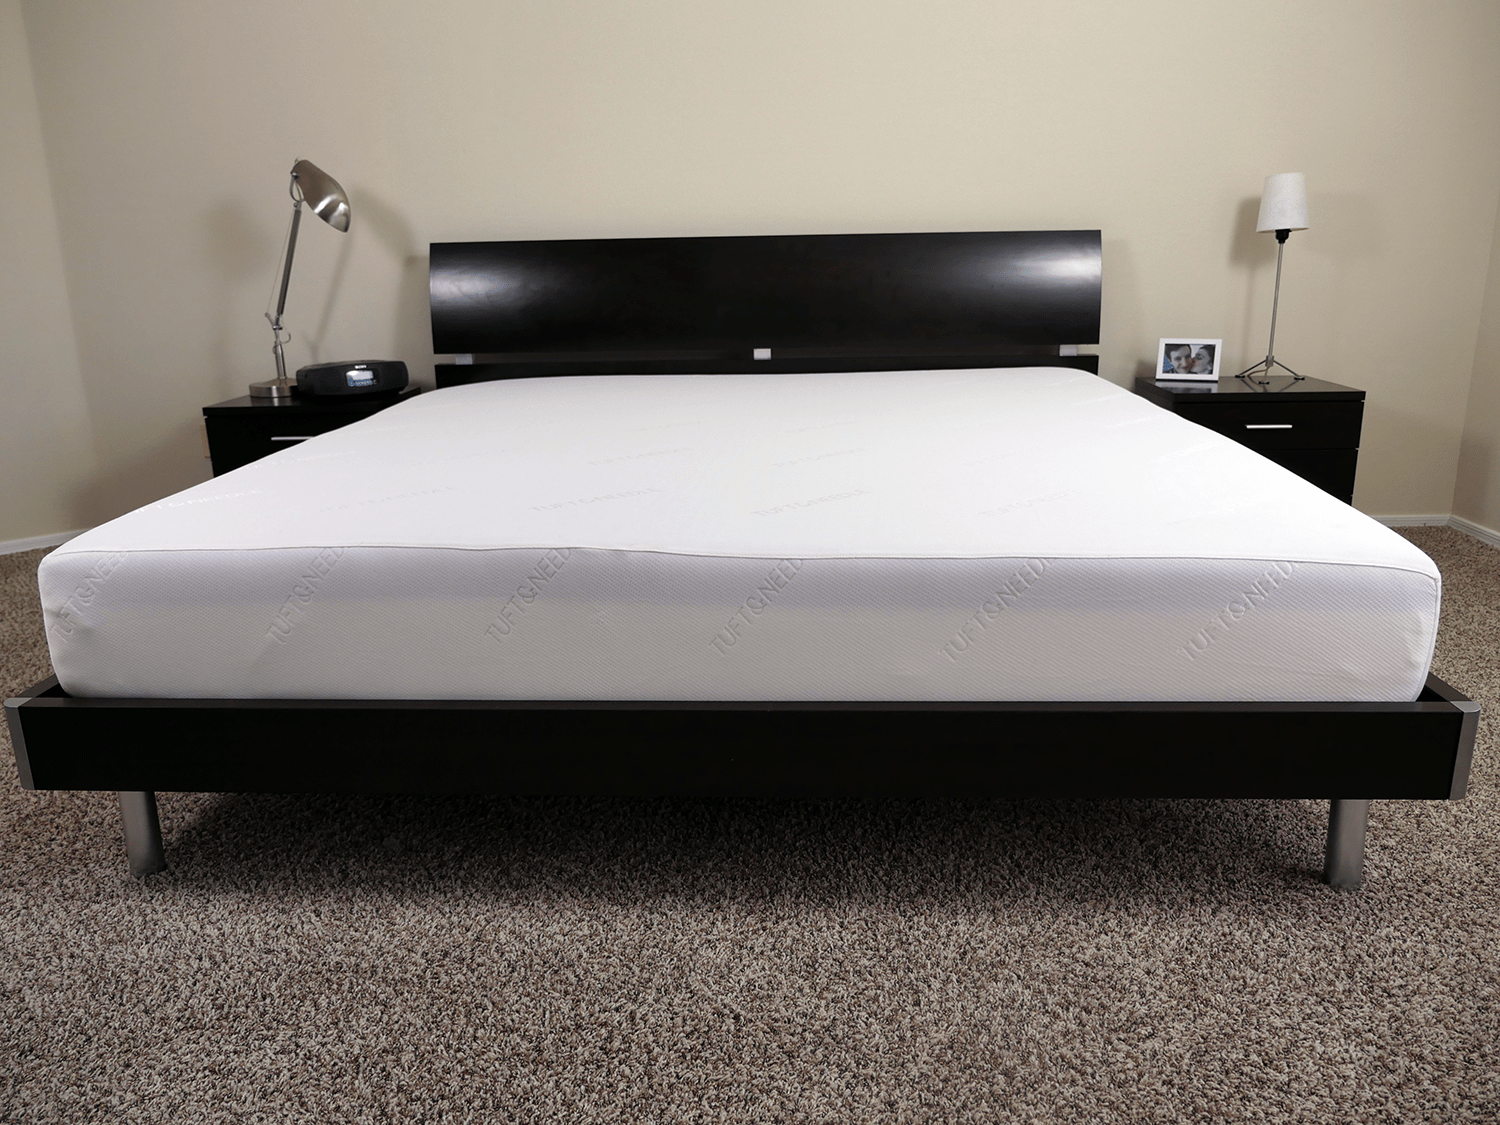 Tuft needle mattress review sleepopolis for Brooklyn bedding vs tuft and needle